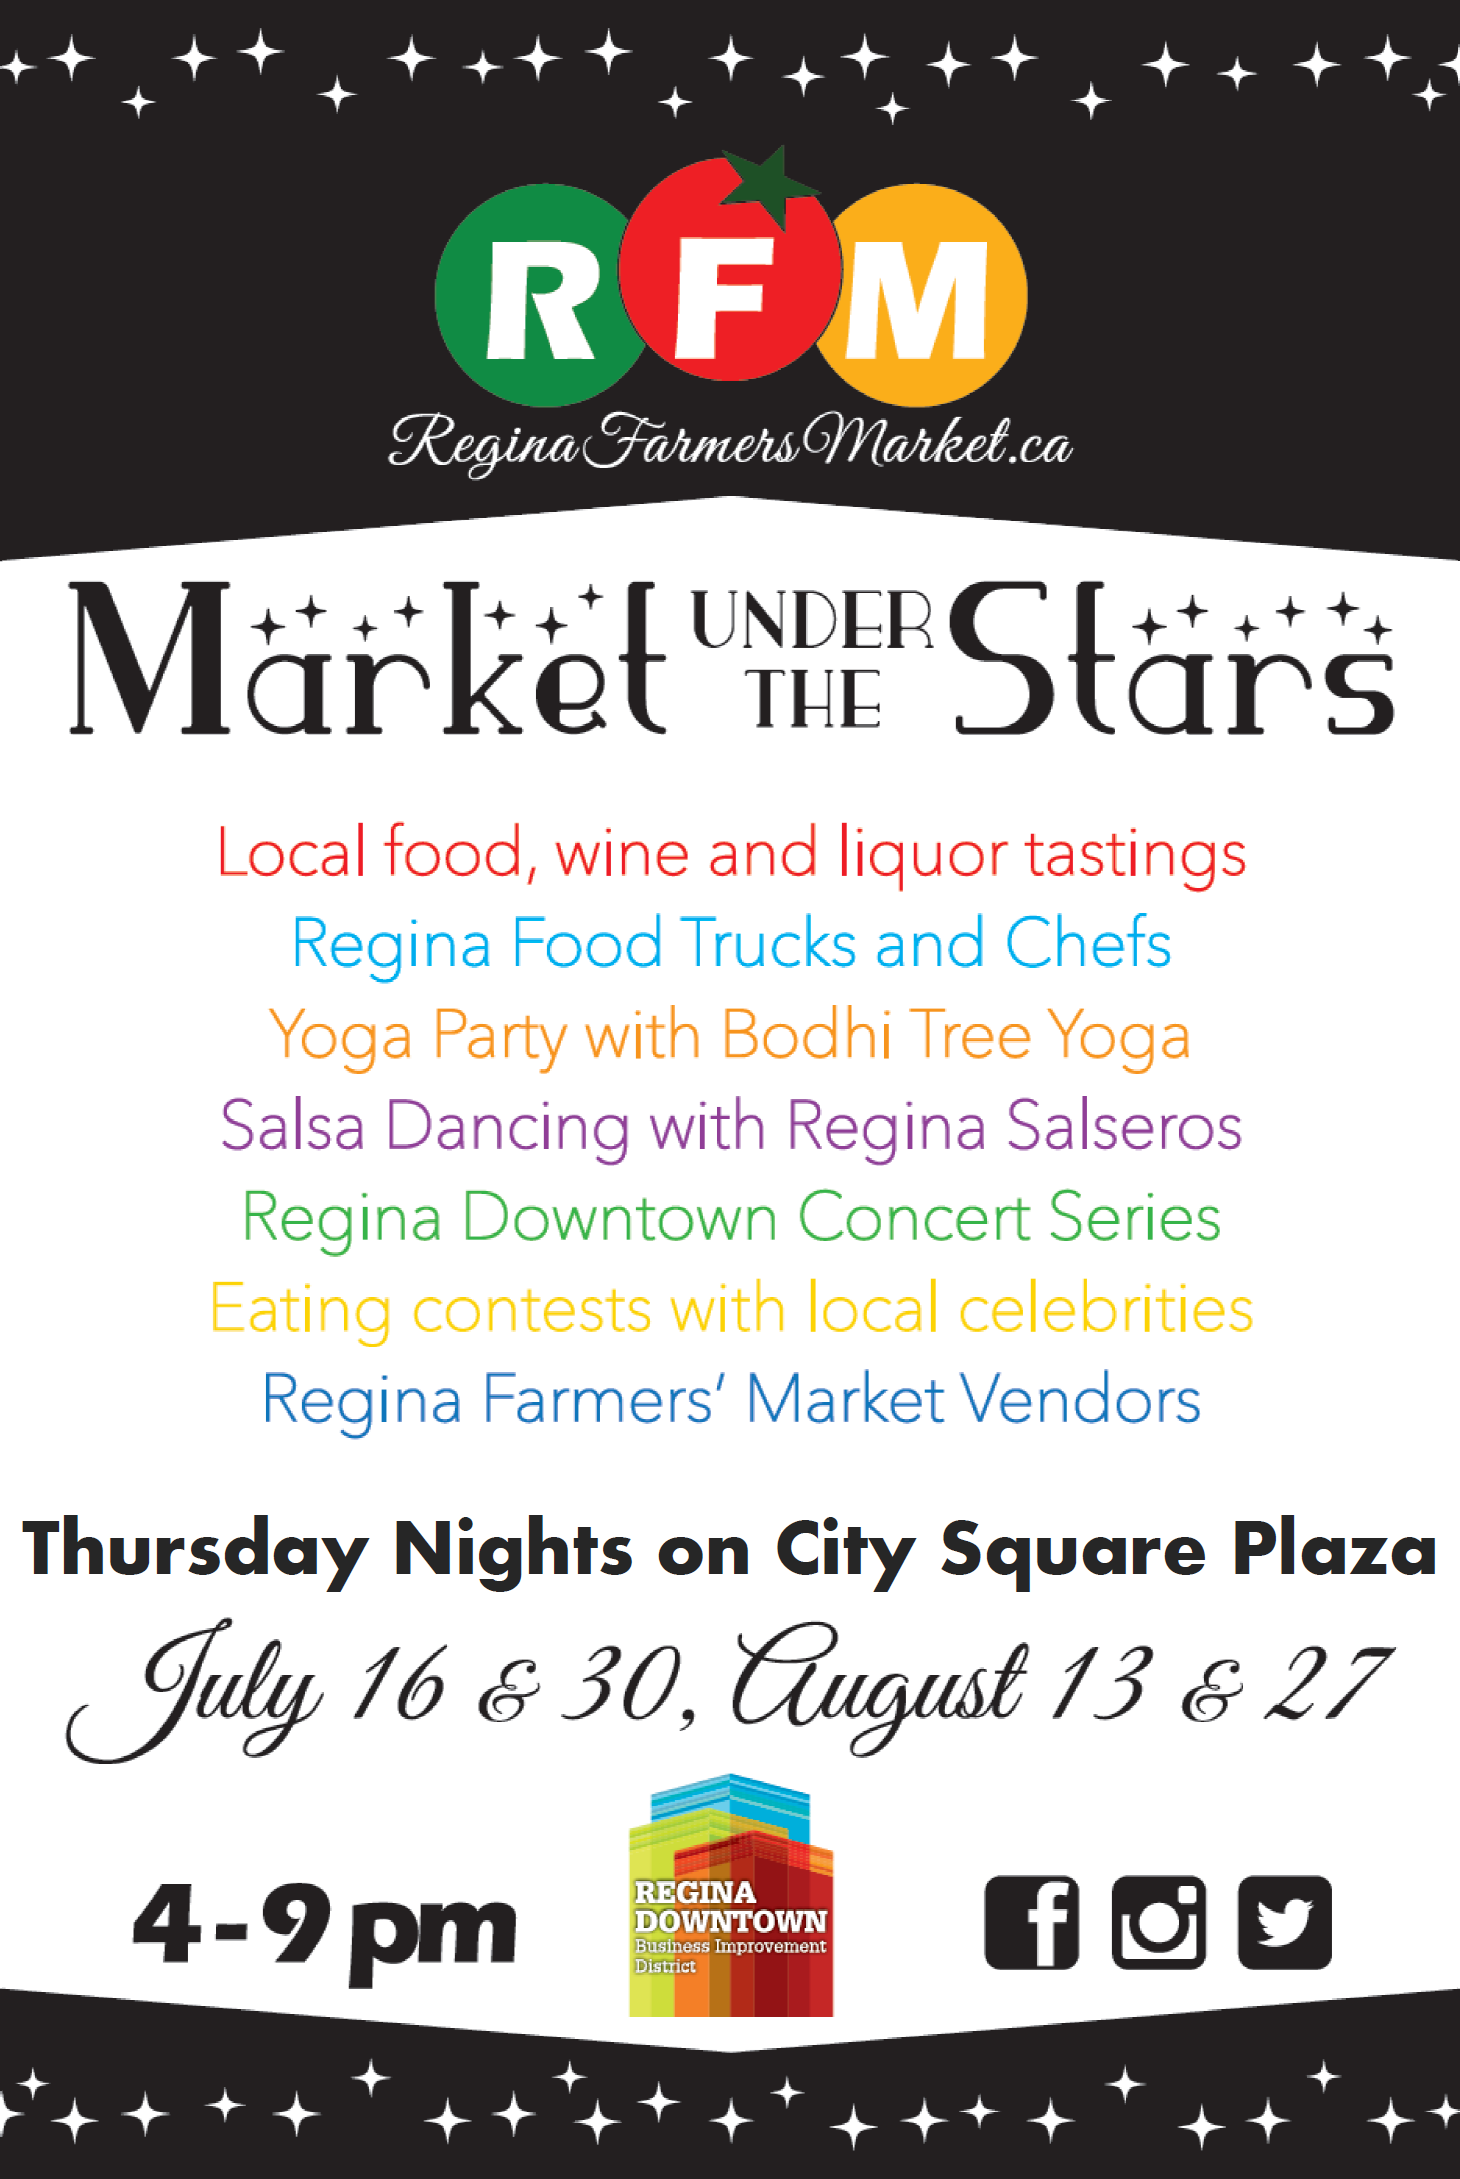 Market under the Stars Media Release and Event Map! - Image 1